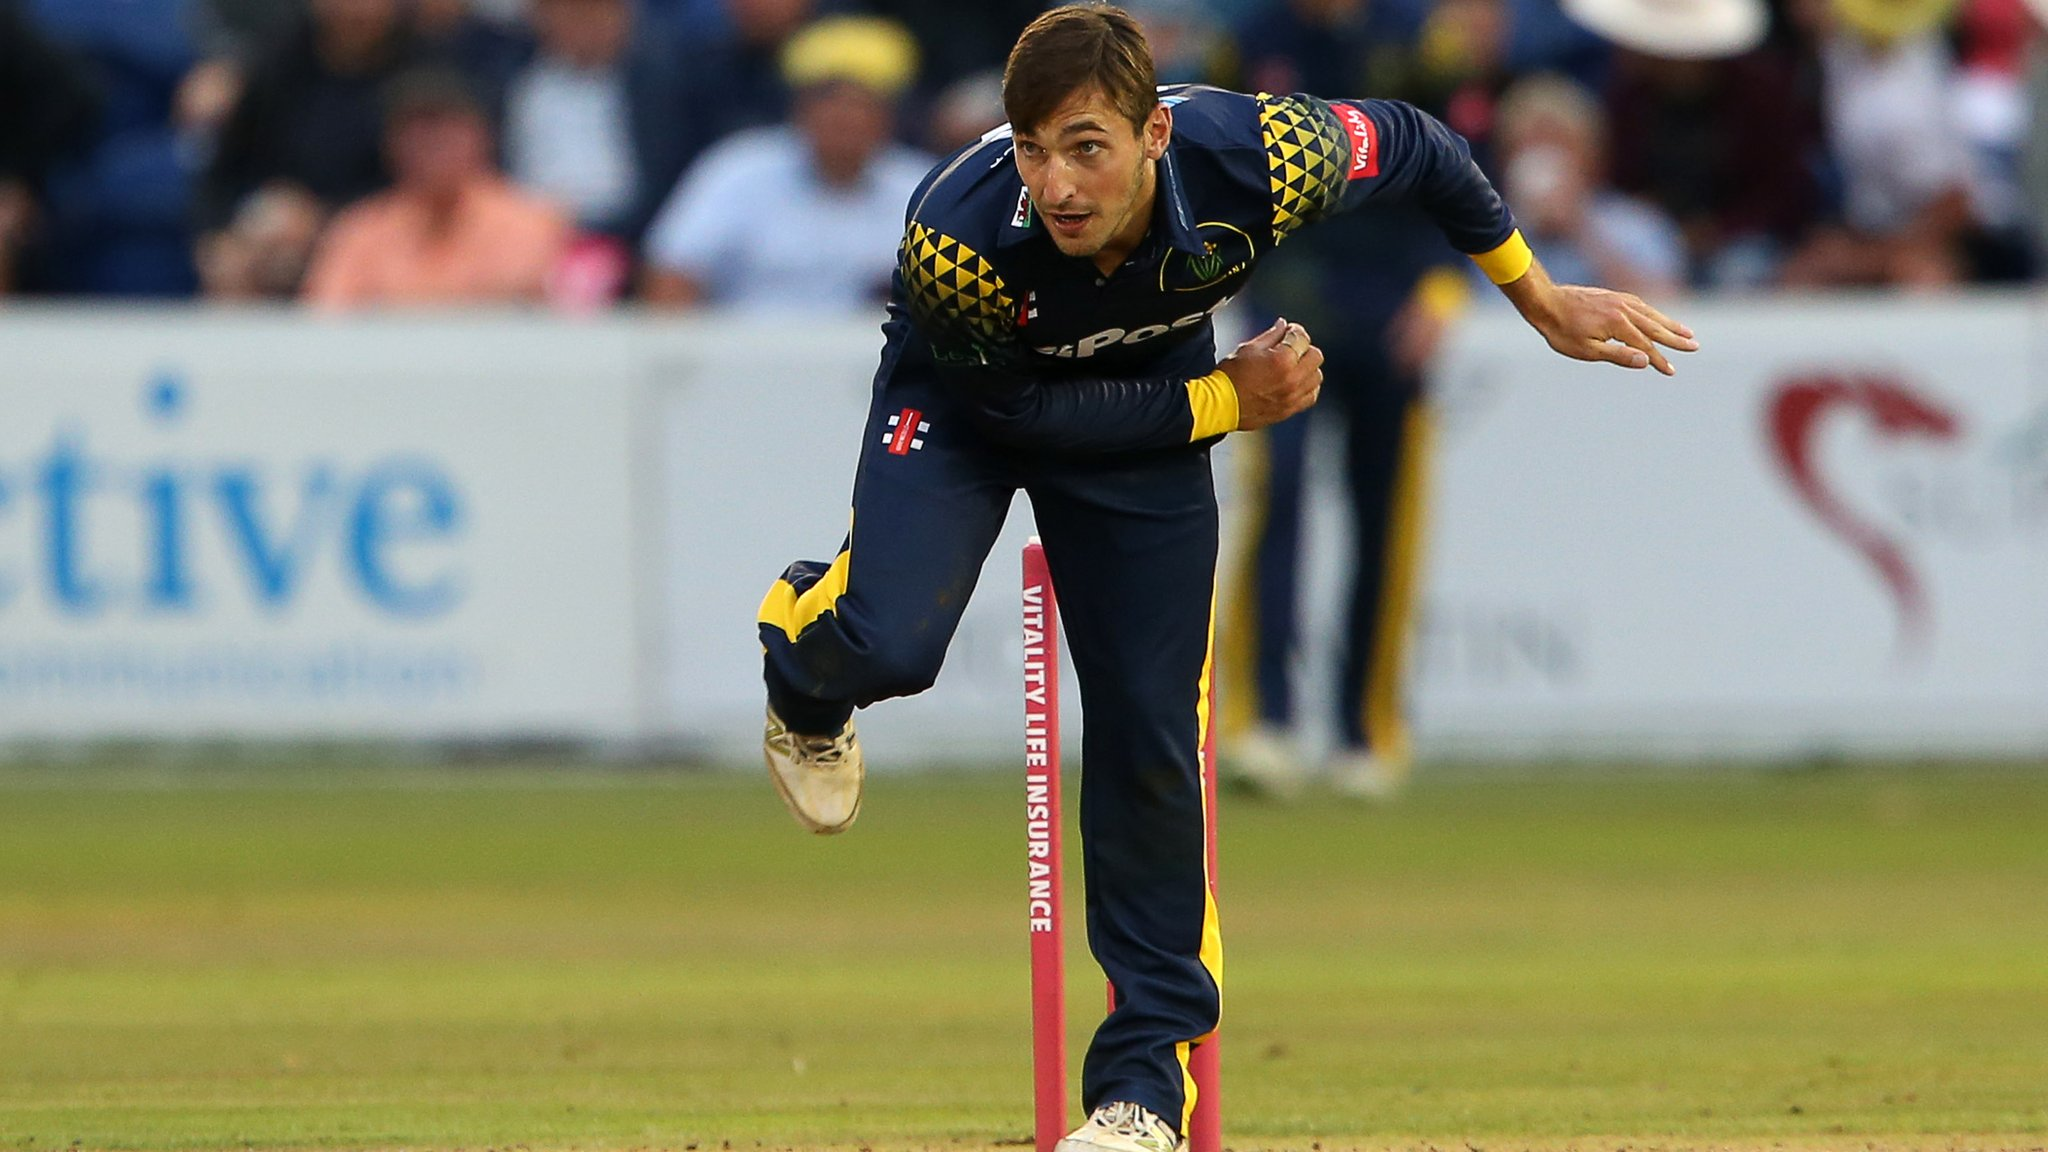 Glamorgan Cricket: Spinner Andrew Salter signs deal extension